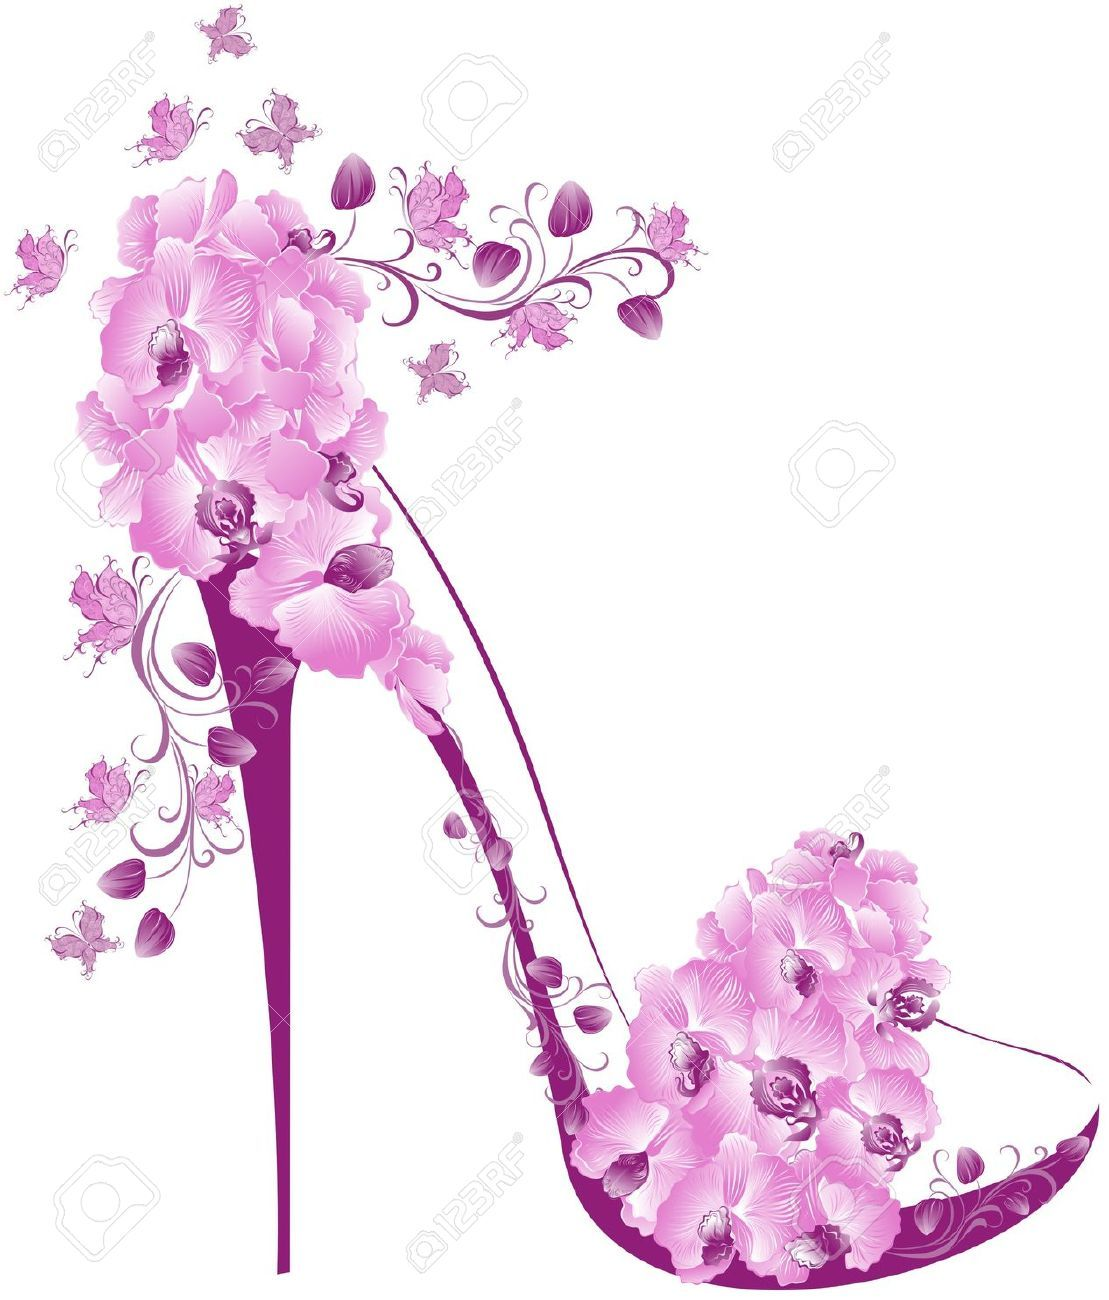 High heel clipart purple. Pink shoes images art